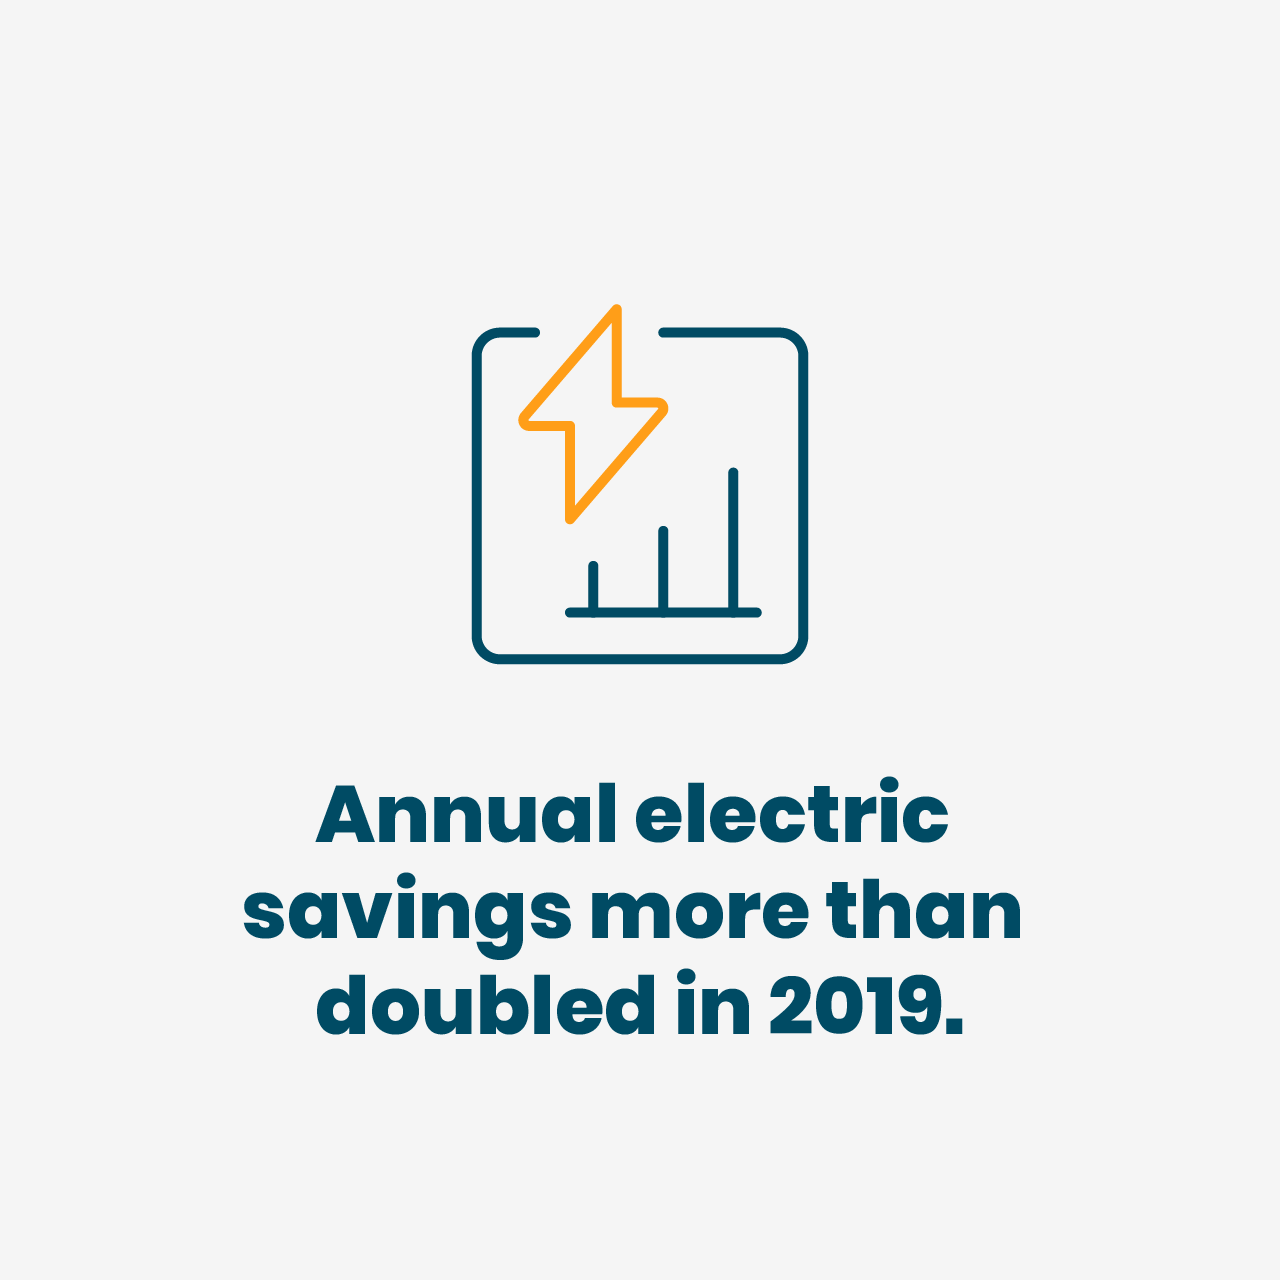 Annual electric savings more than doubled in 2019.